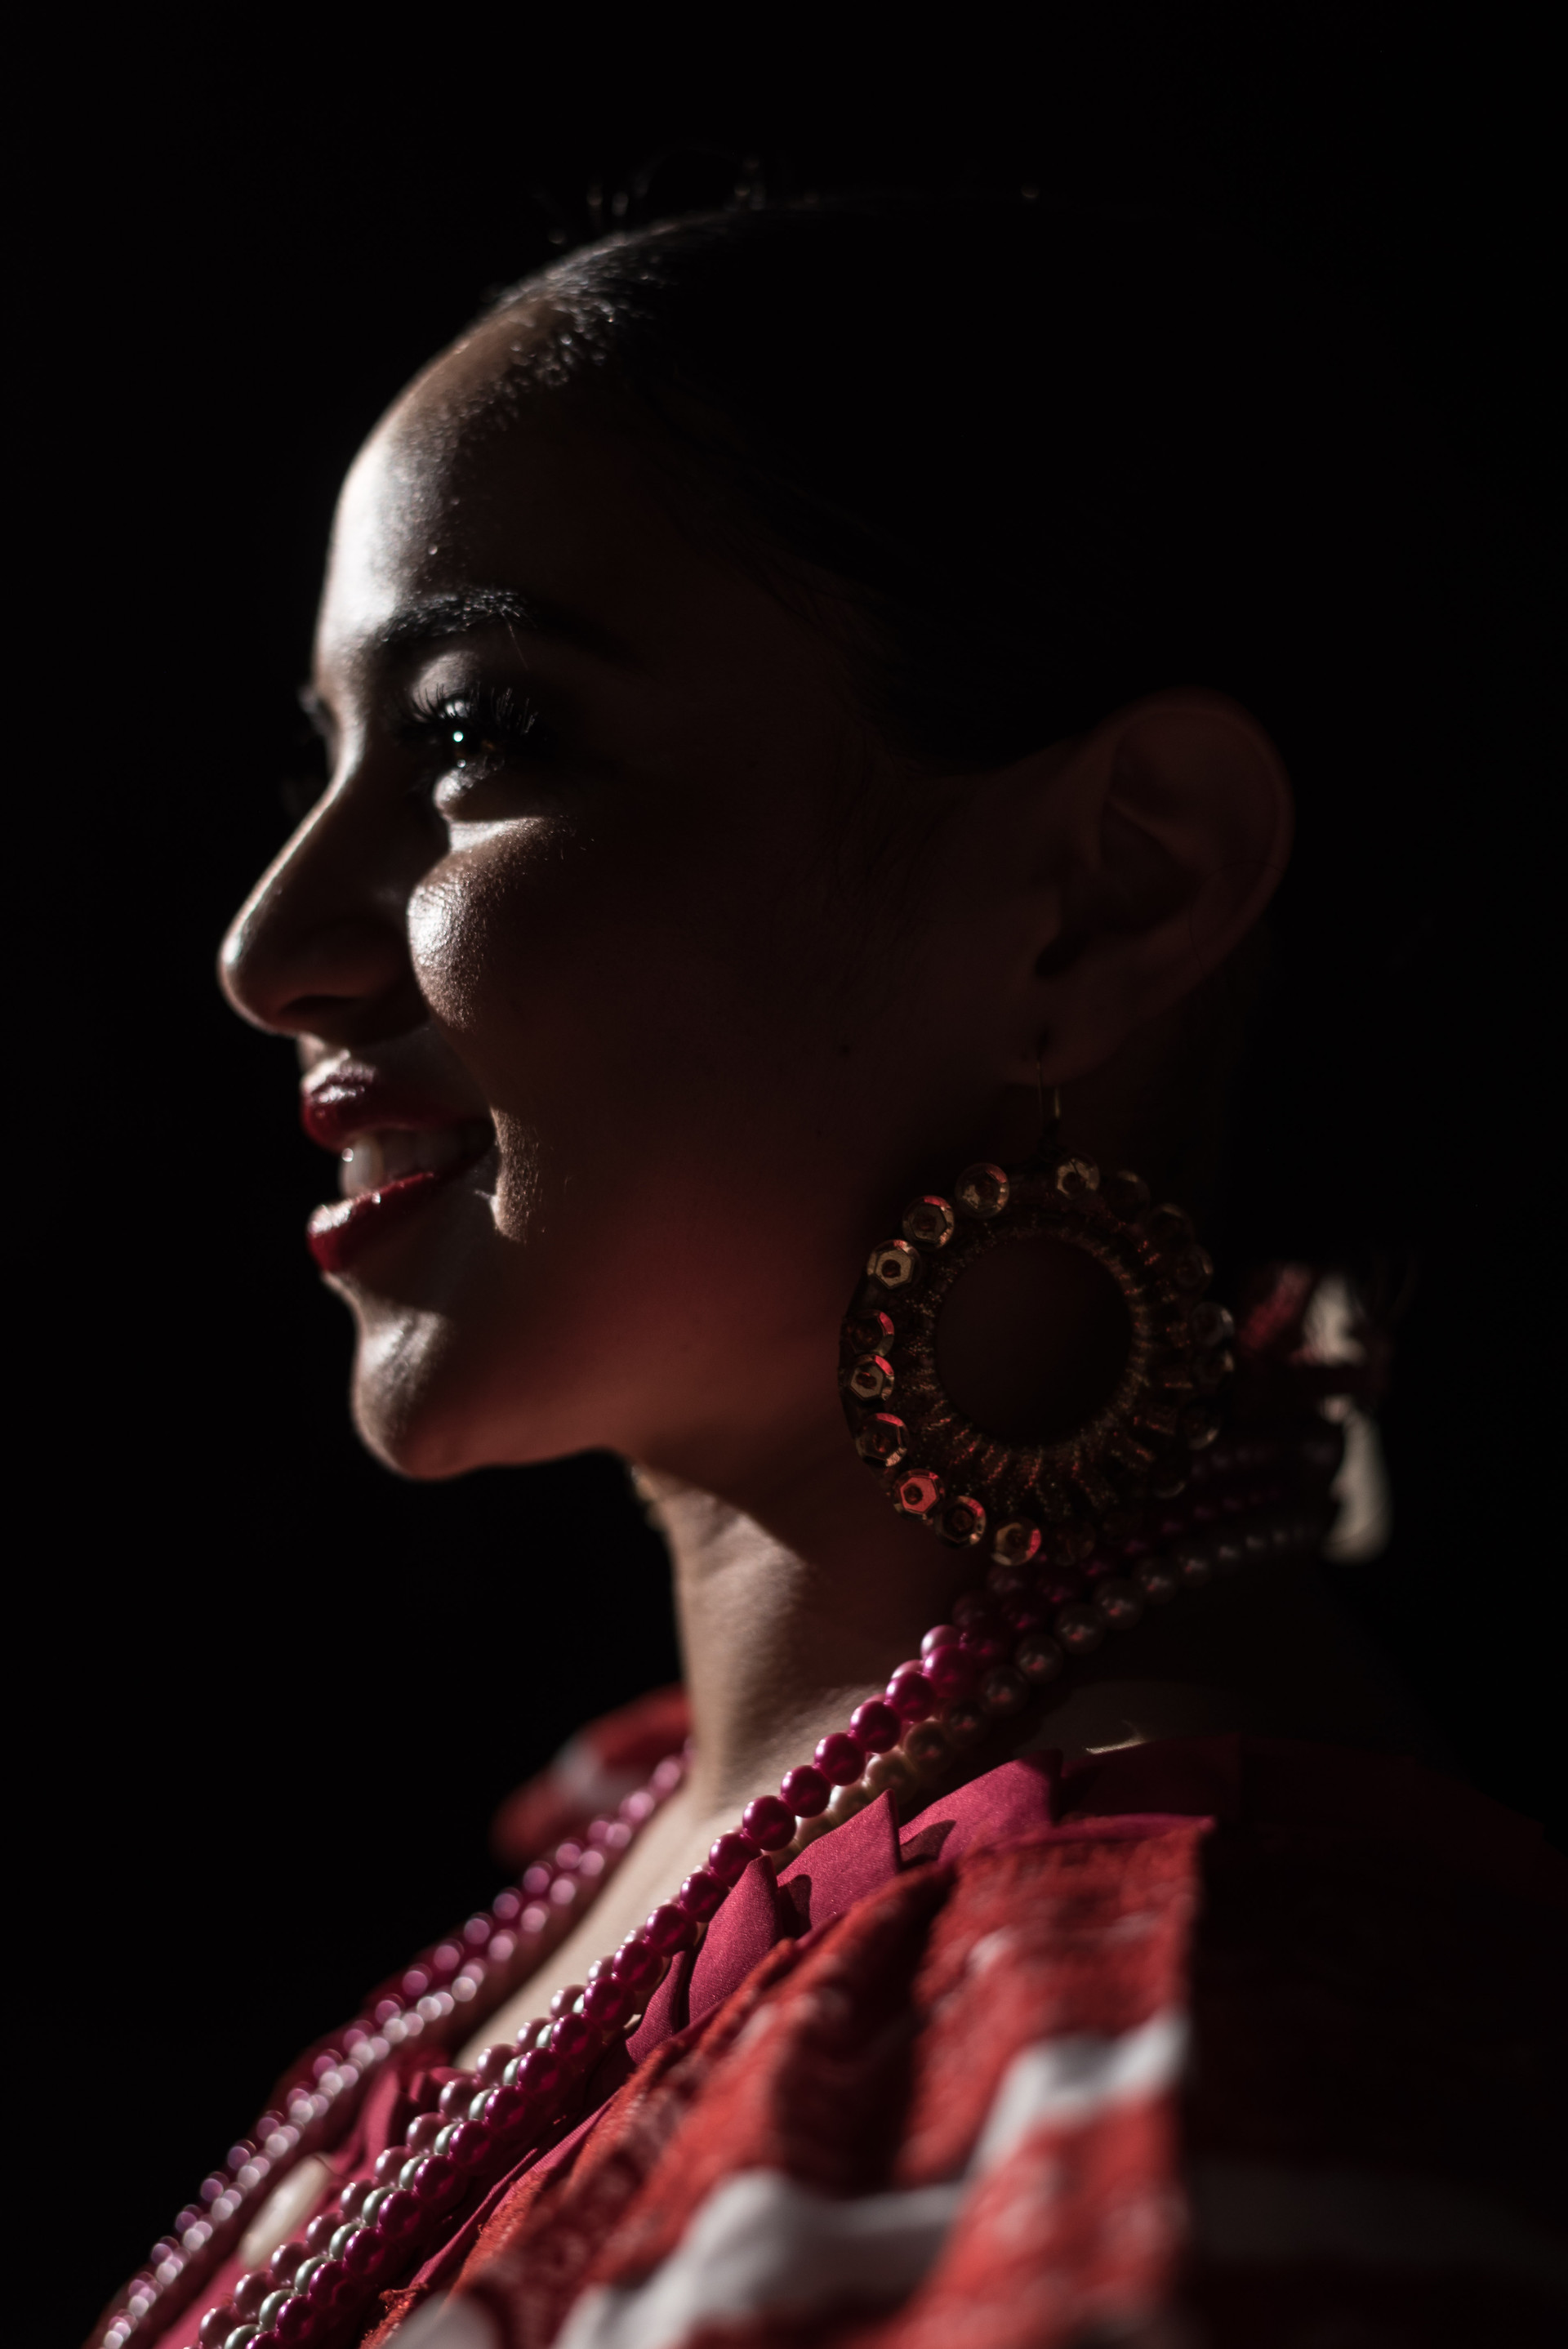 Dancer from the Ballet Folklorico Tapatio dance group